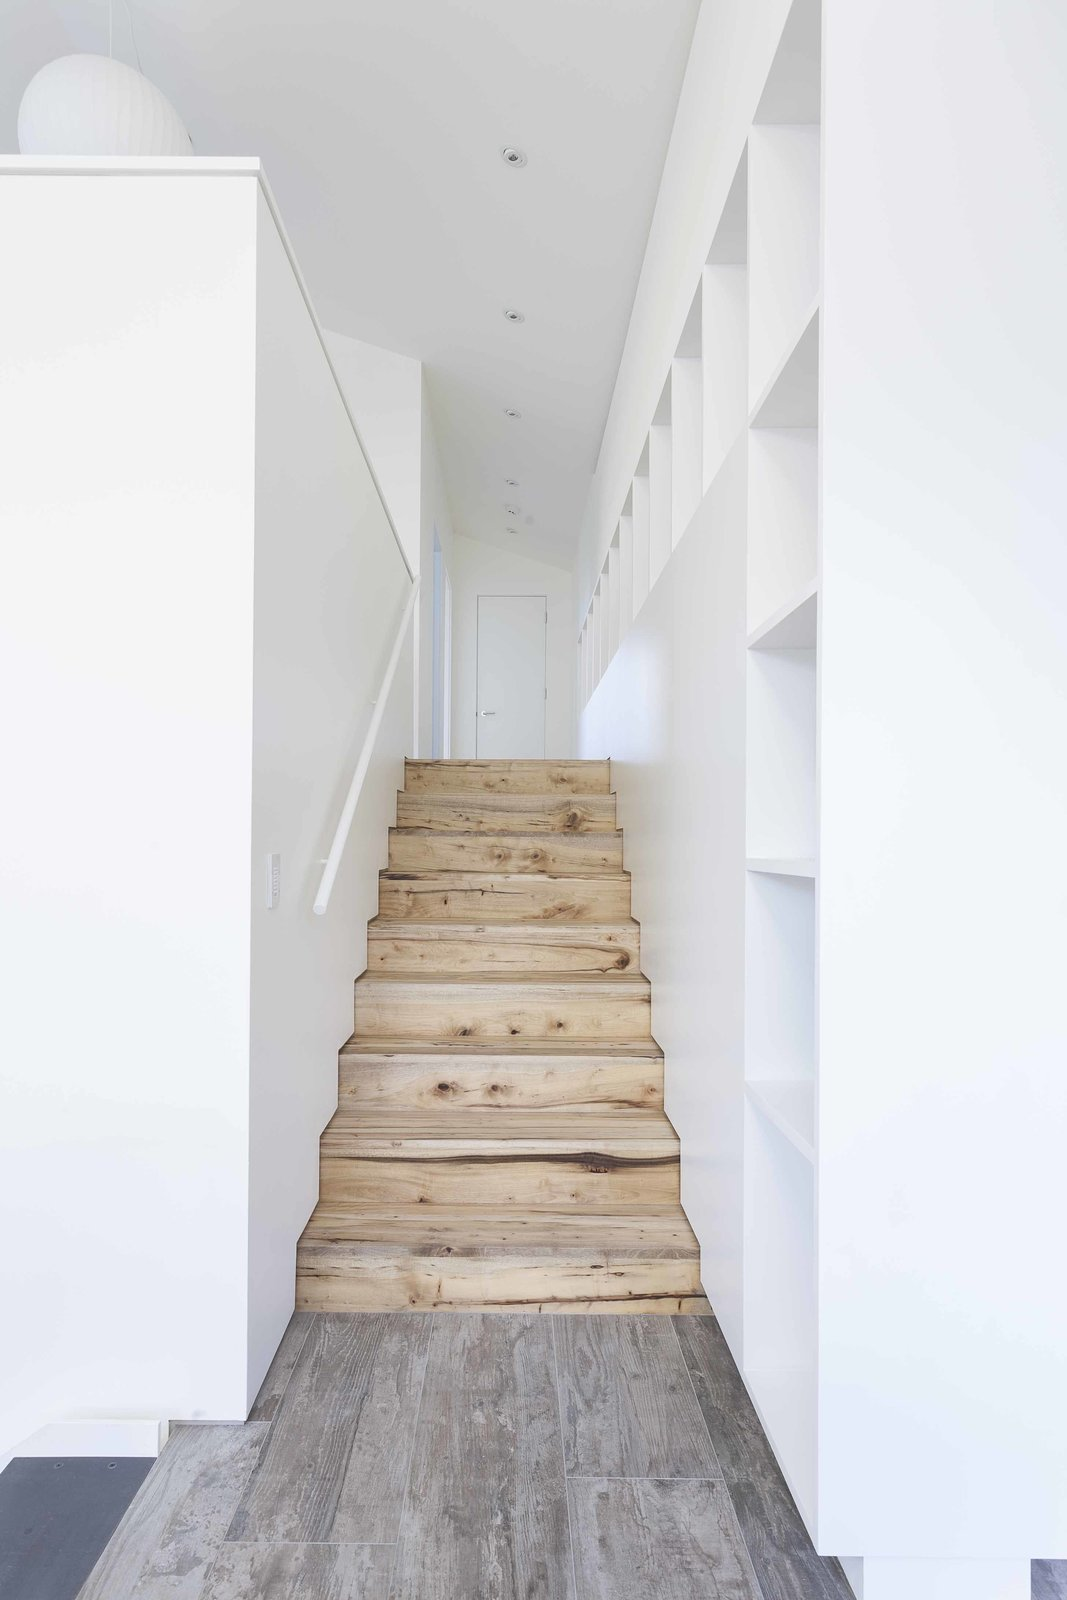 "Executing subtle design details, even in transitional spaces, was one of the great successes of the collaborative architect-contractor relationship. ""Our collective strength,"" says Dovetail principal Chad Rollins, is that ""we genuinely understand each other's craft."" In the transition from the den to the artist studio, natural myrtlewood stairs meet a wood-grain Daltile landing. Where the stair treads and risers meet the wall, a three-quarter-inch reveal is placed in lieu of conventional baseboard. These simple and clean details so often ""can be costly to create and can be jeopardized when the budget is under pressure,"" says Rollins."